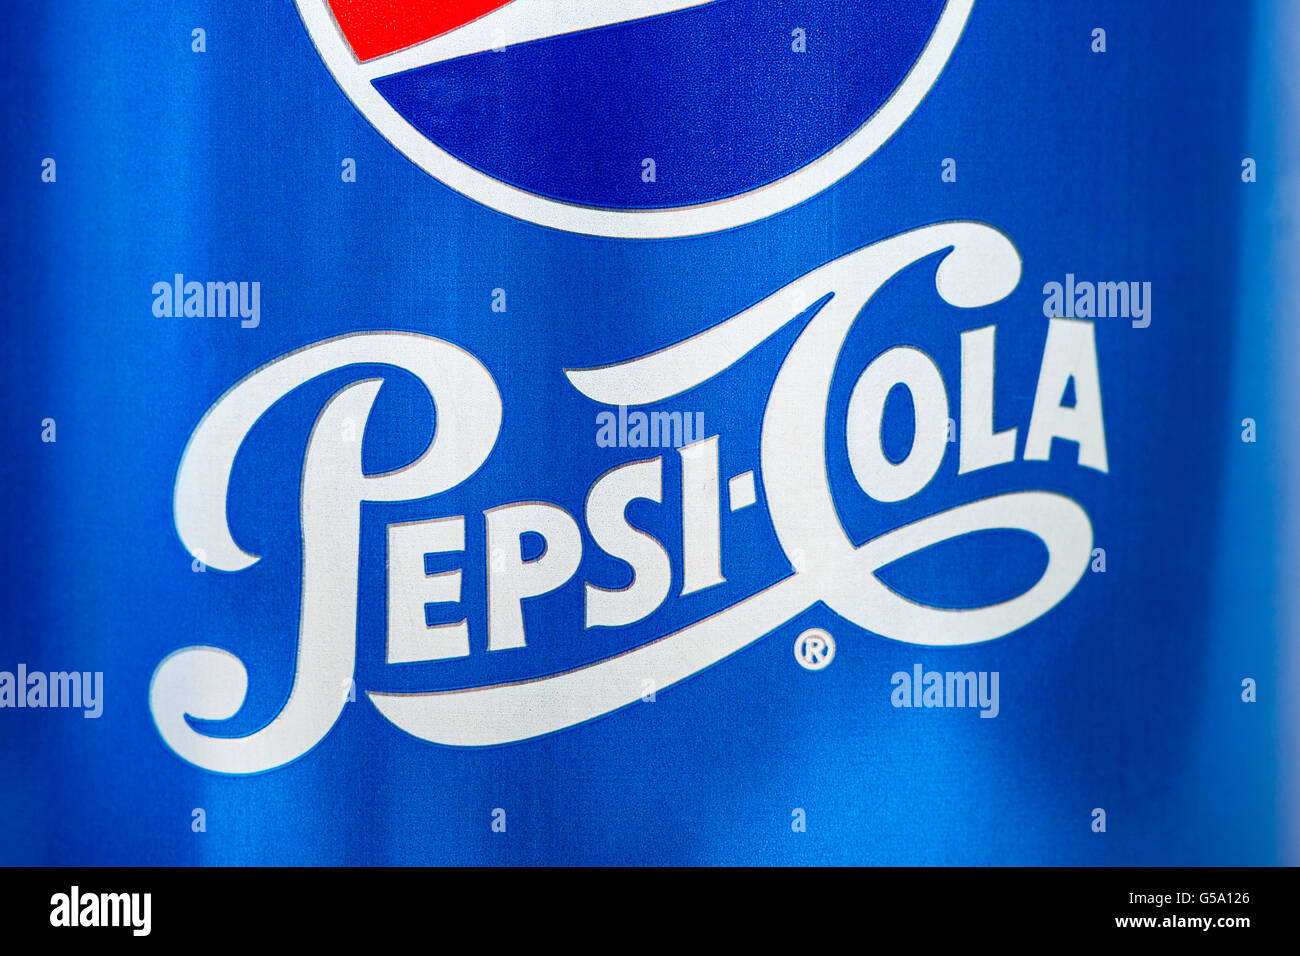 pepsi cola logo wwwpixsharkcom images galleries with